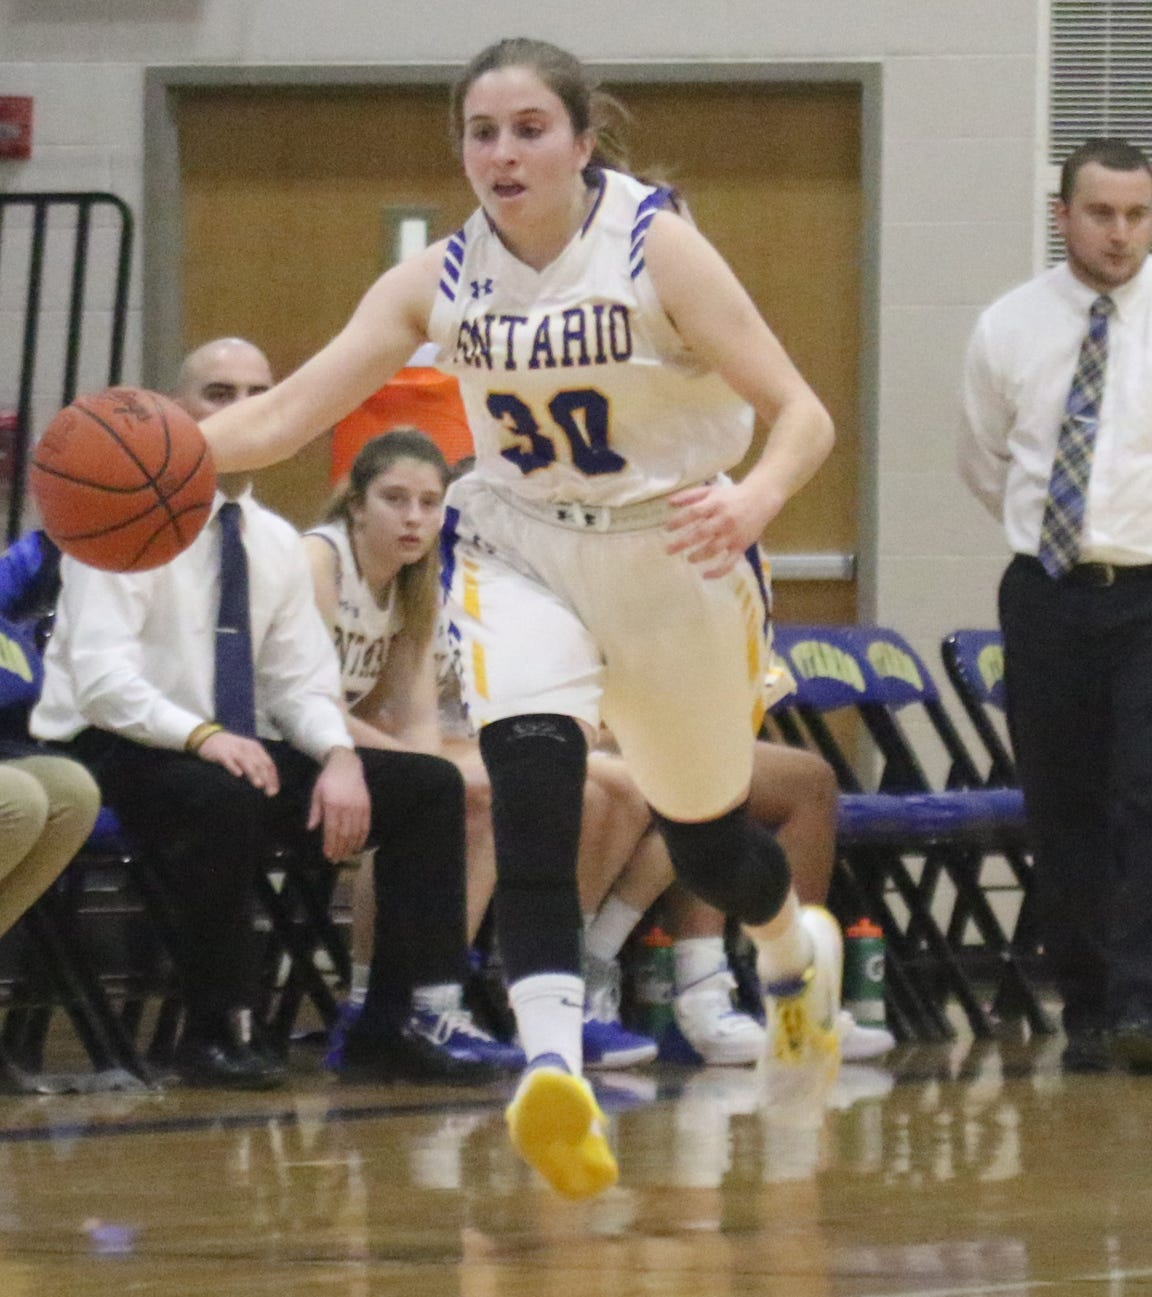 Ontario senior Ashten Vavra has overcome everything thrown her way all for the love of basketball.